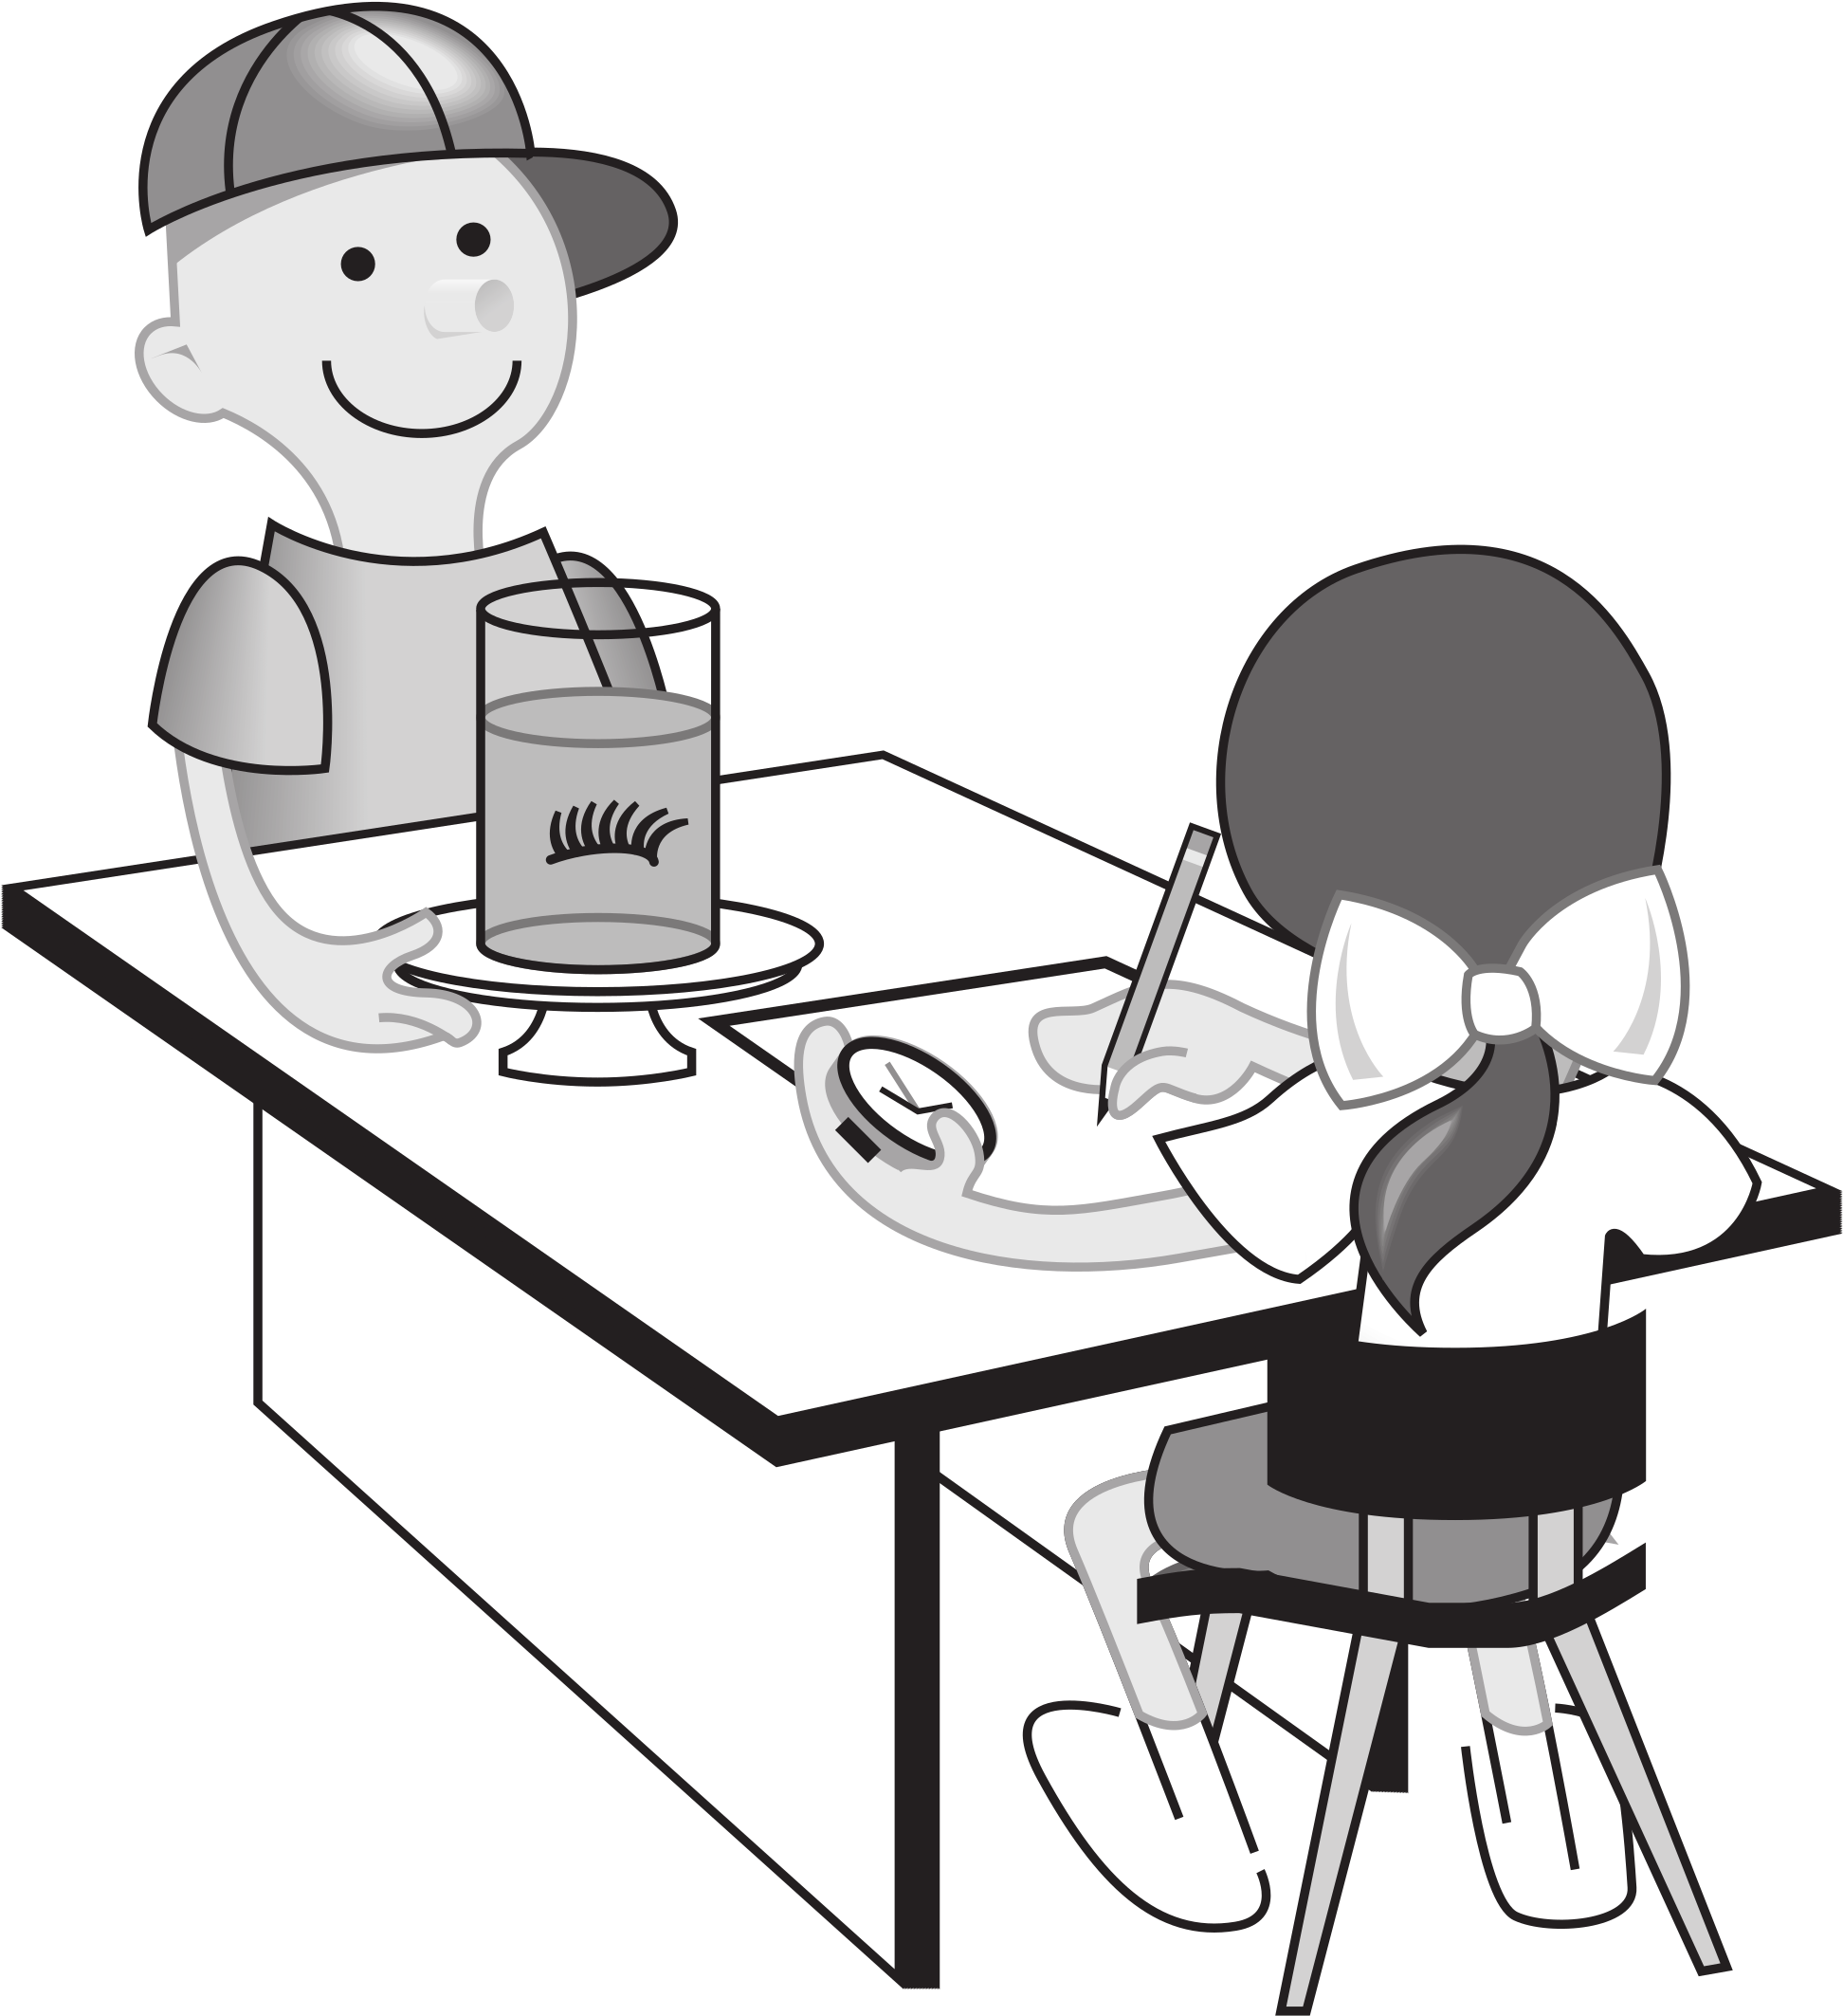 Kids at table doing. Experiment clipart student experiment